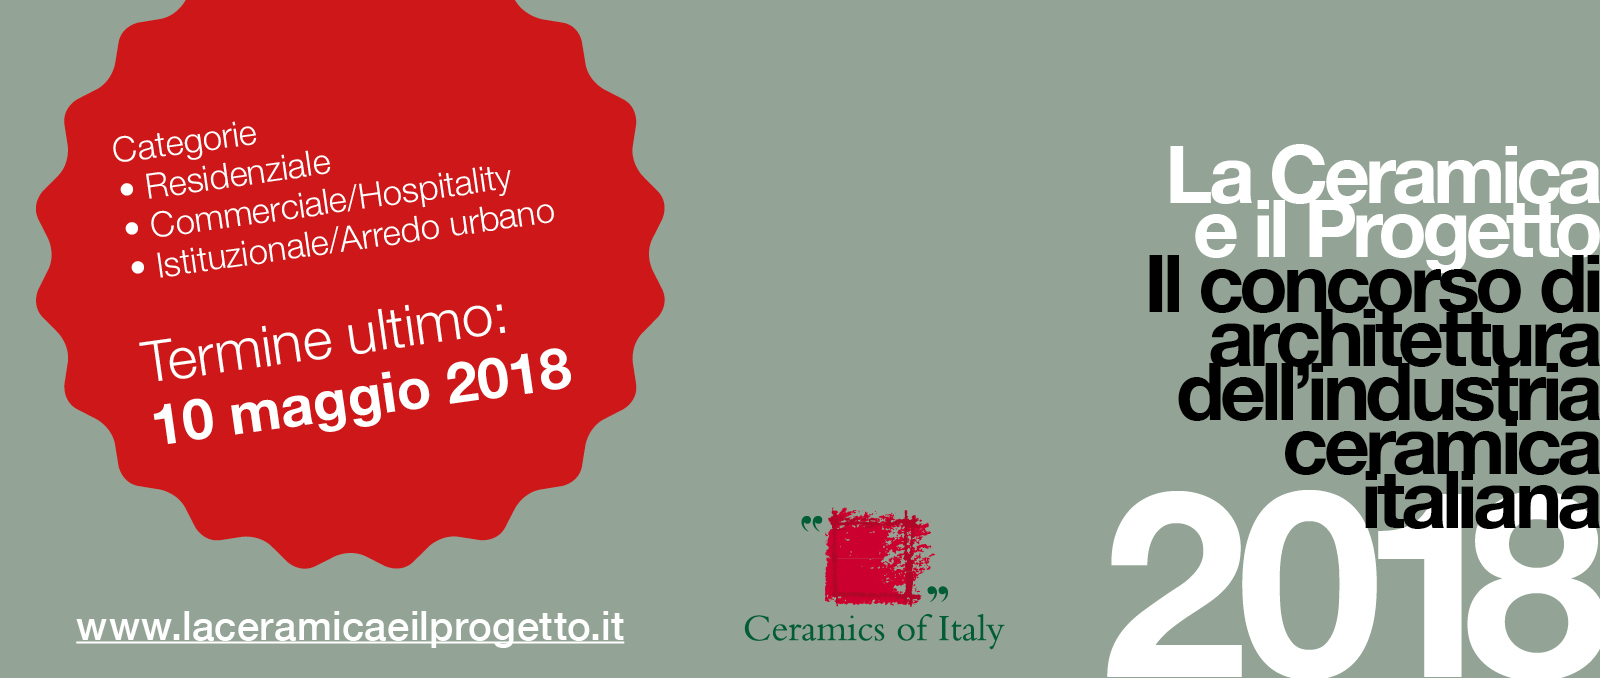 """La Ceramica e il Progetto"" 2018: the competition's seventh edition gets under way"